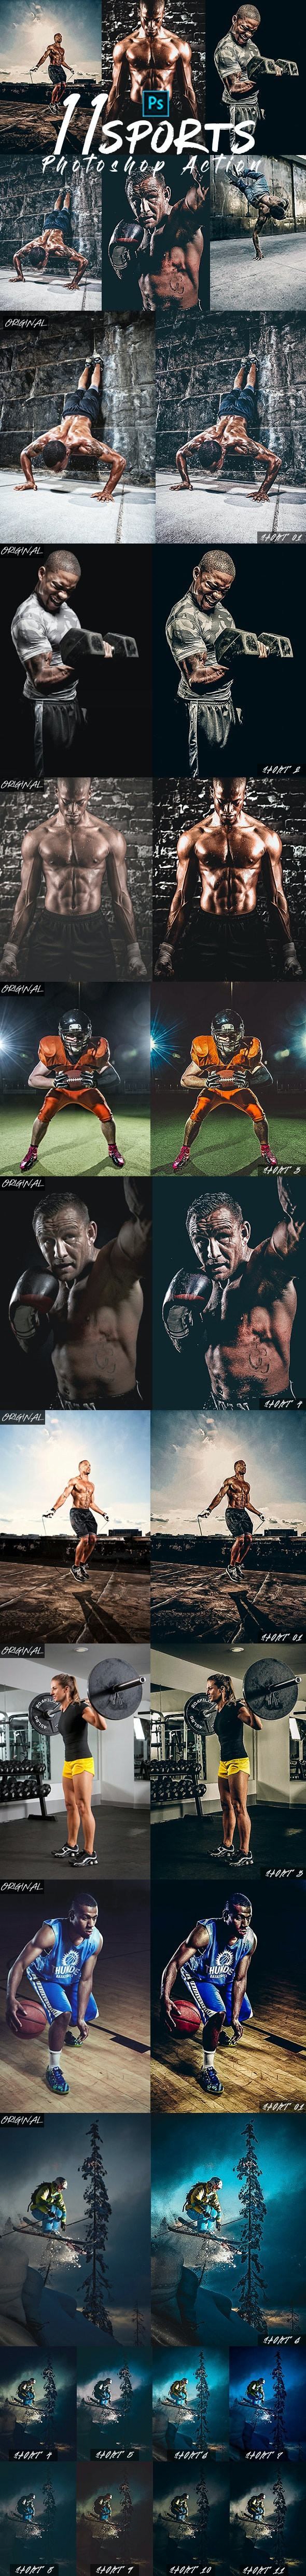 HDR Sports Photoshop Actions - Photo Effects Actions